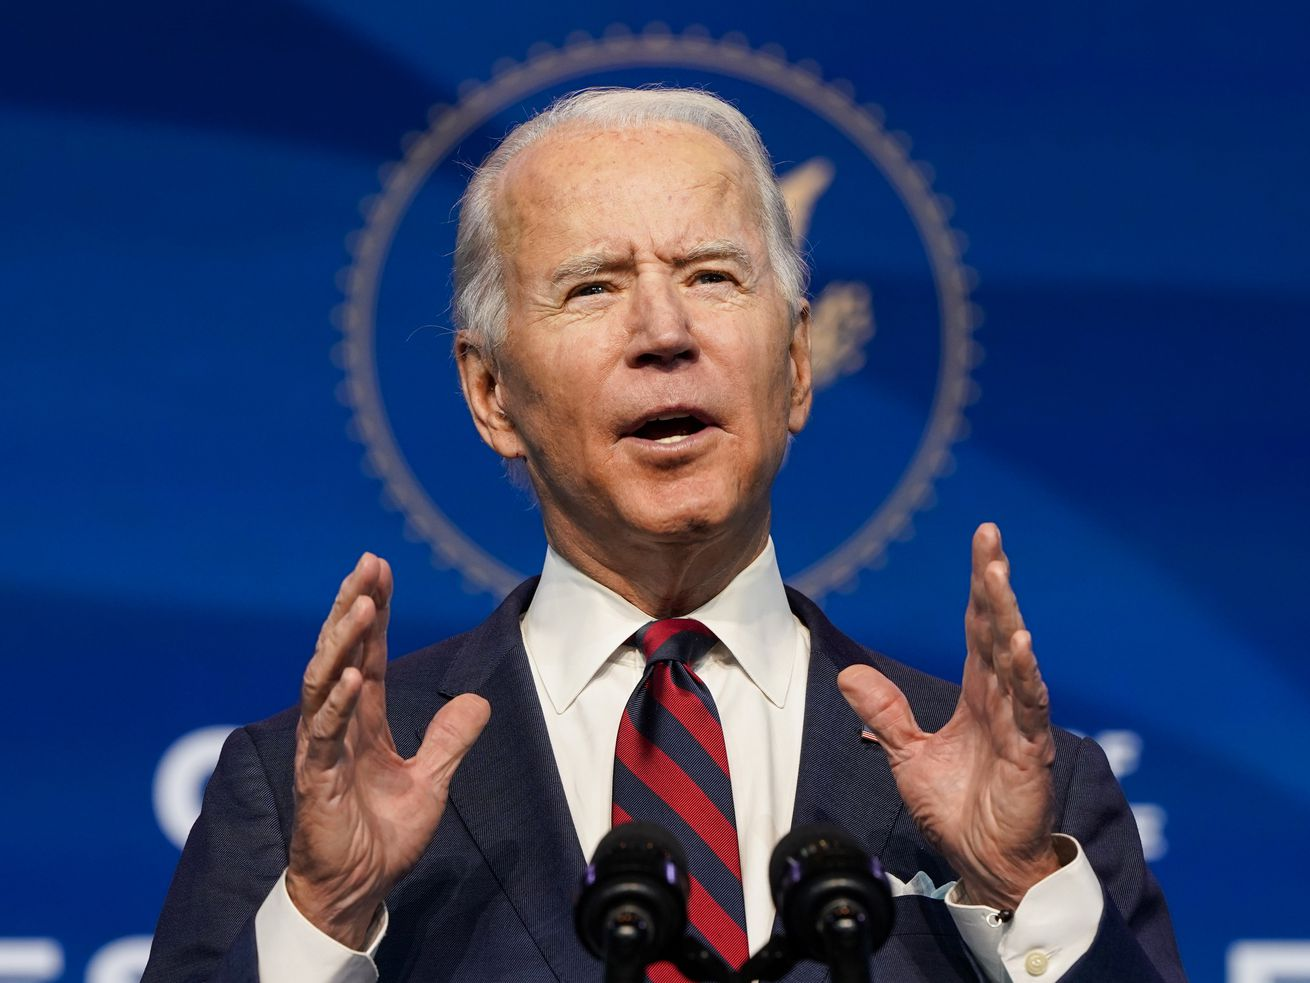 Then–President-elect Joe Biden announces members of his climate change team on December 19, 2020.